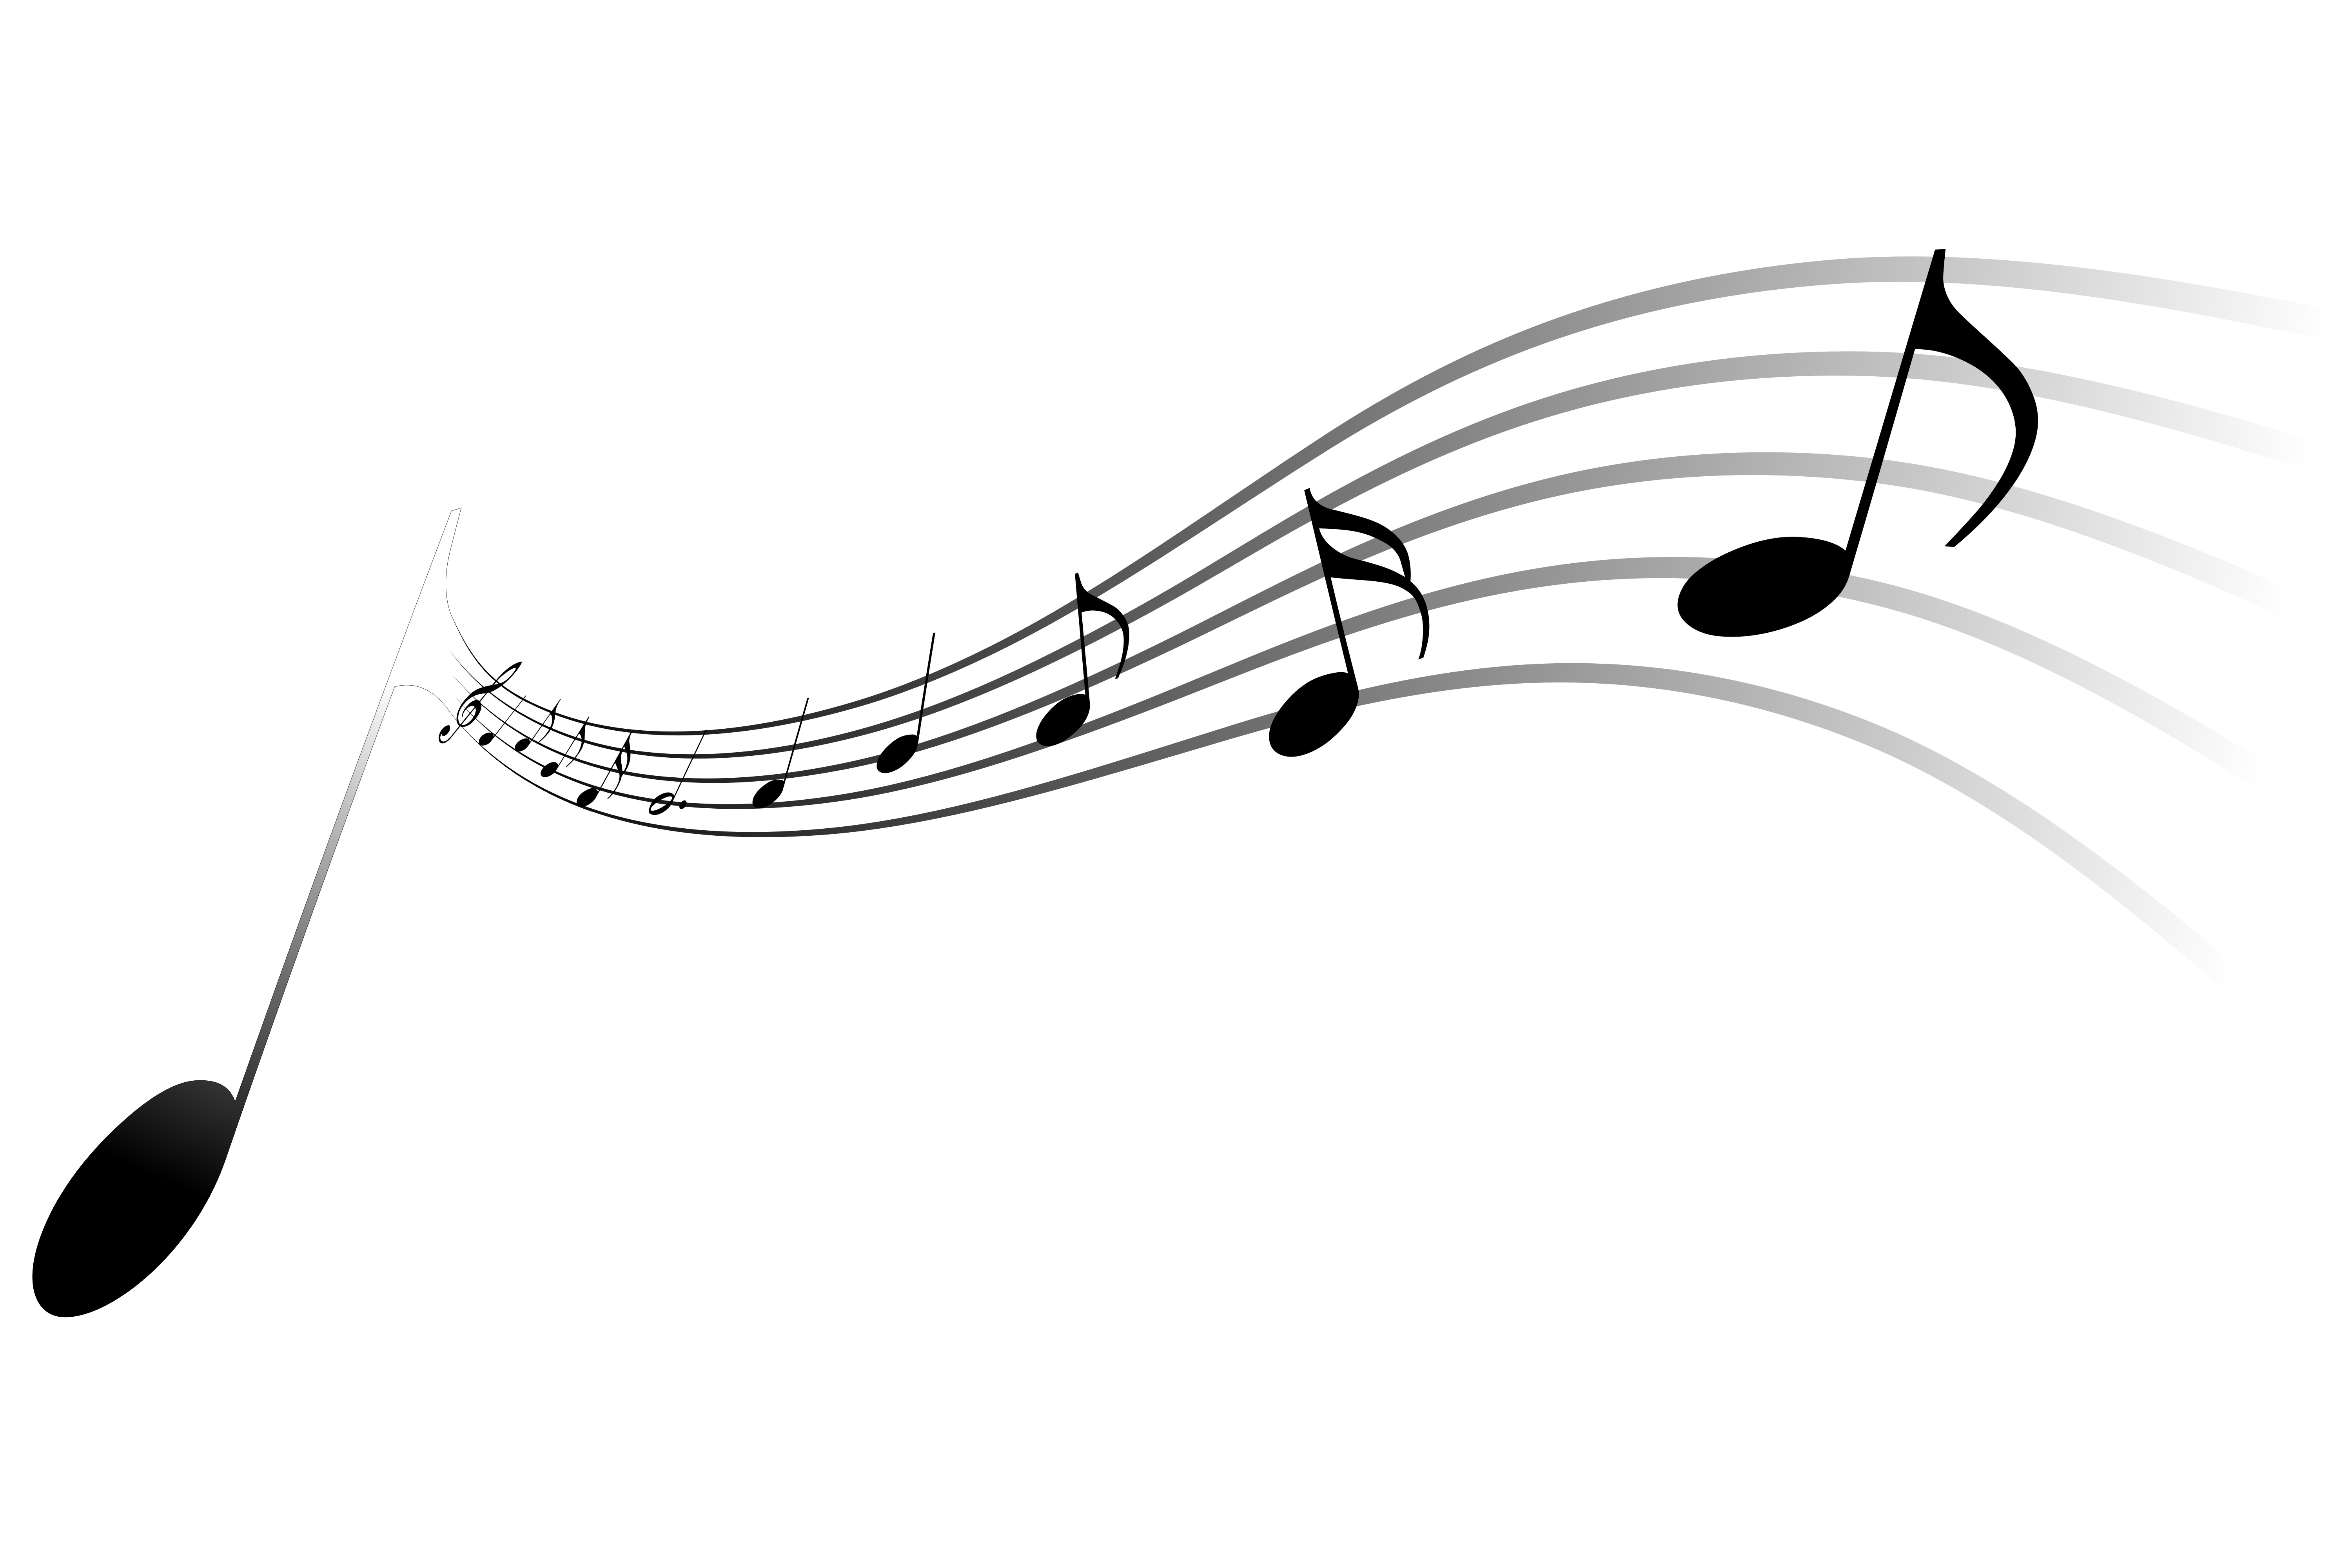 Band clipart abstract. Music note wallpaper download